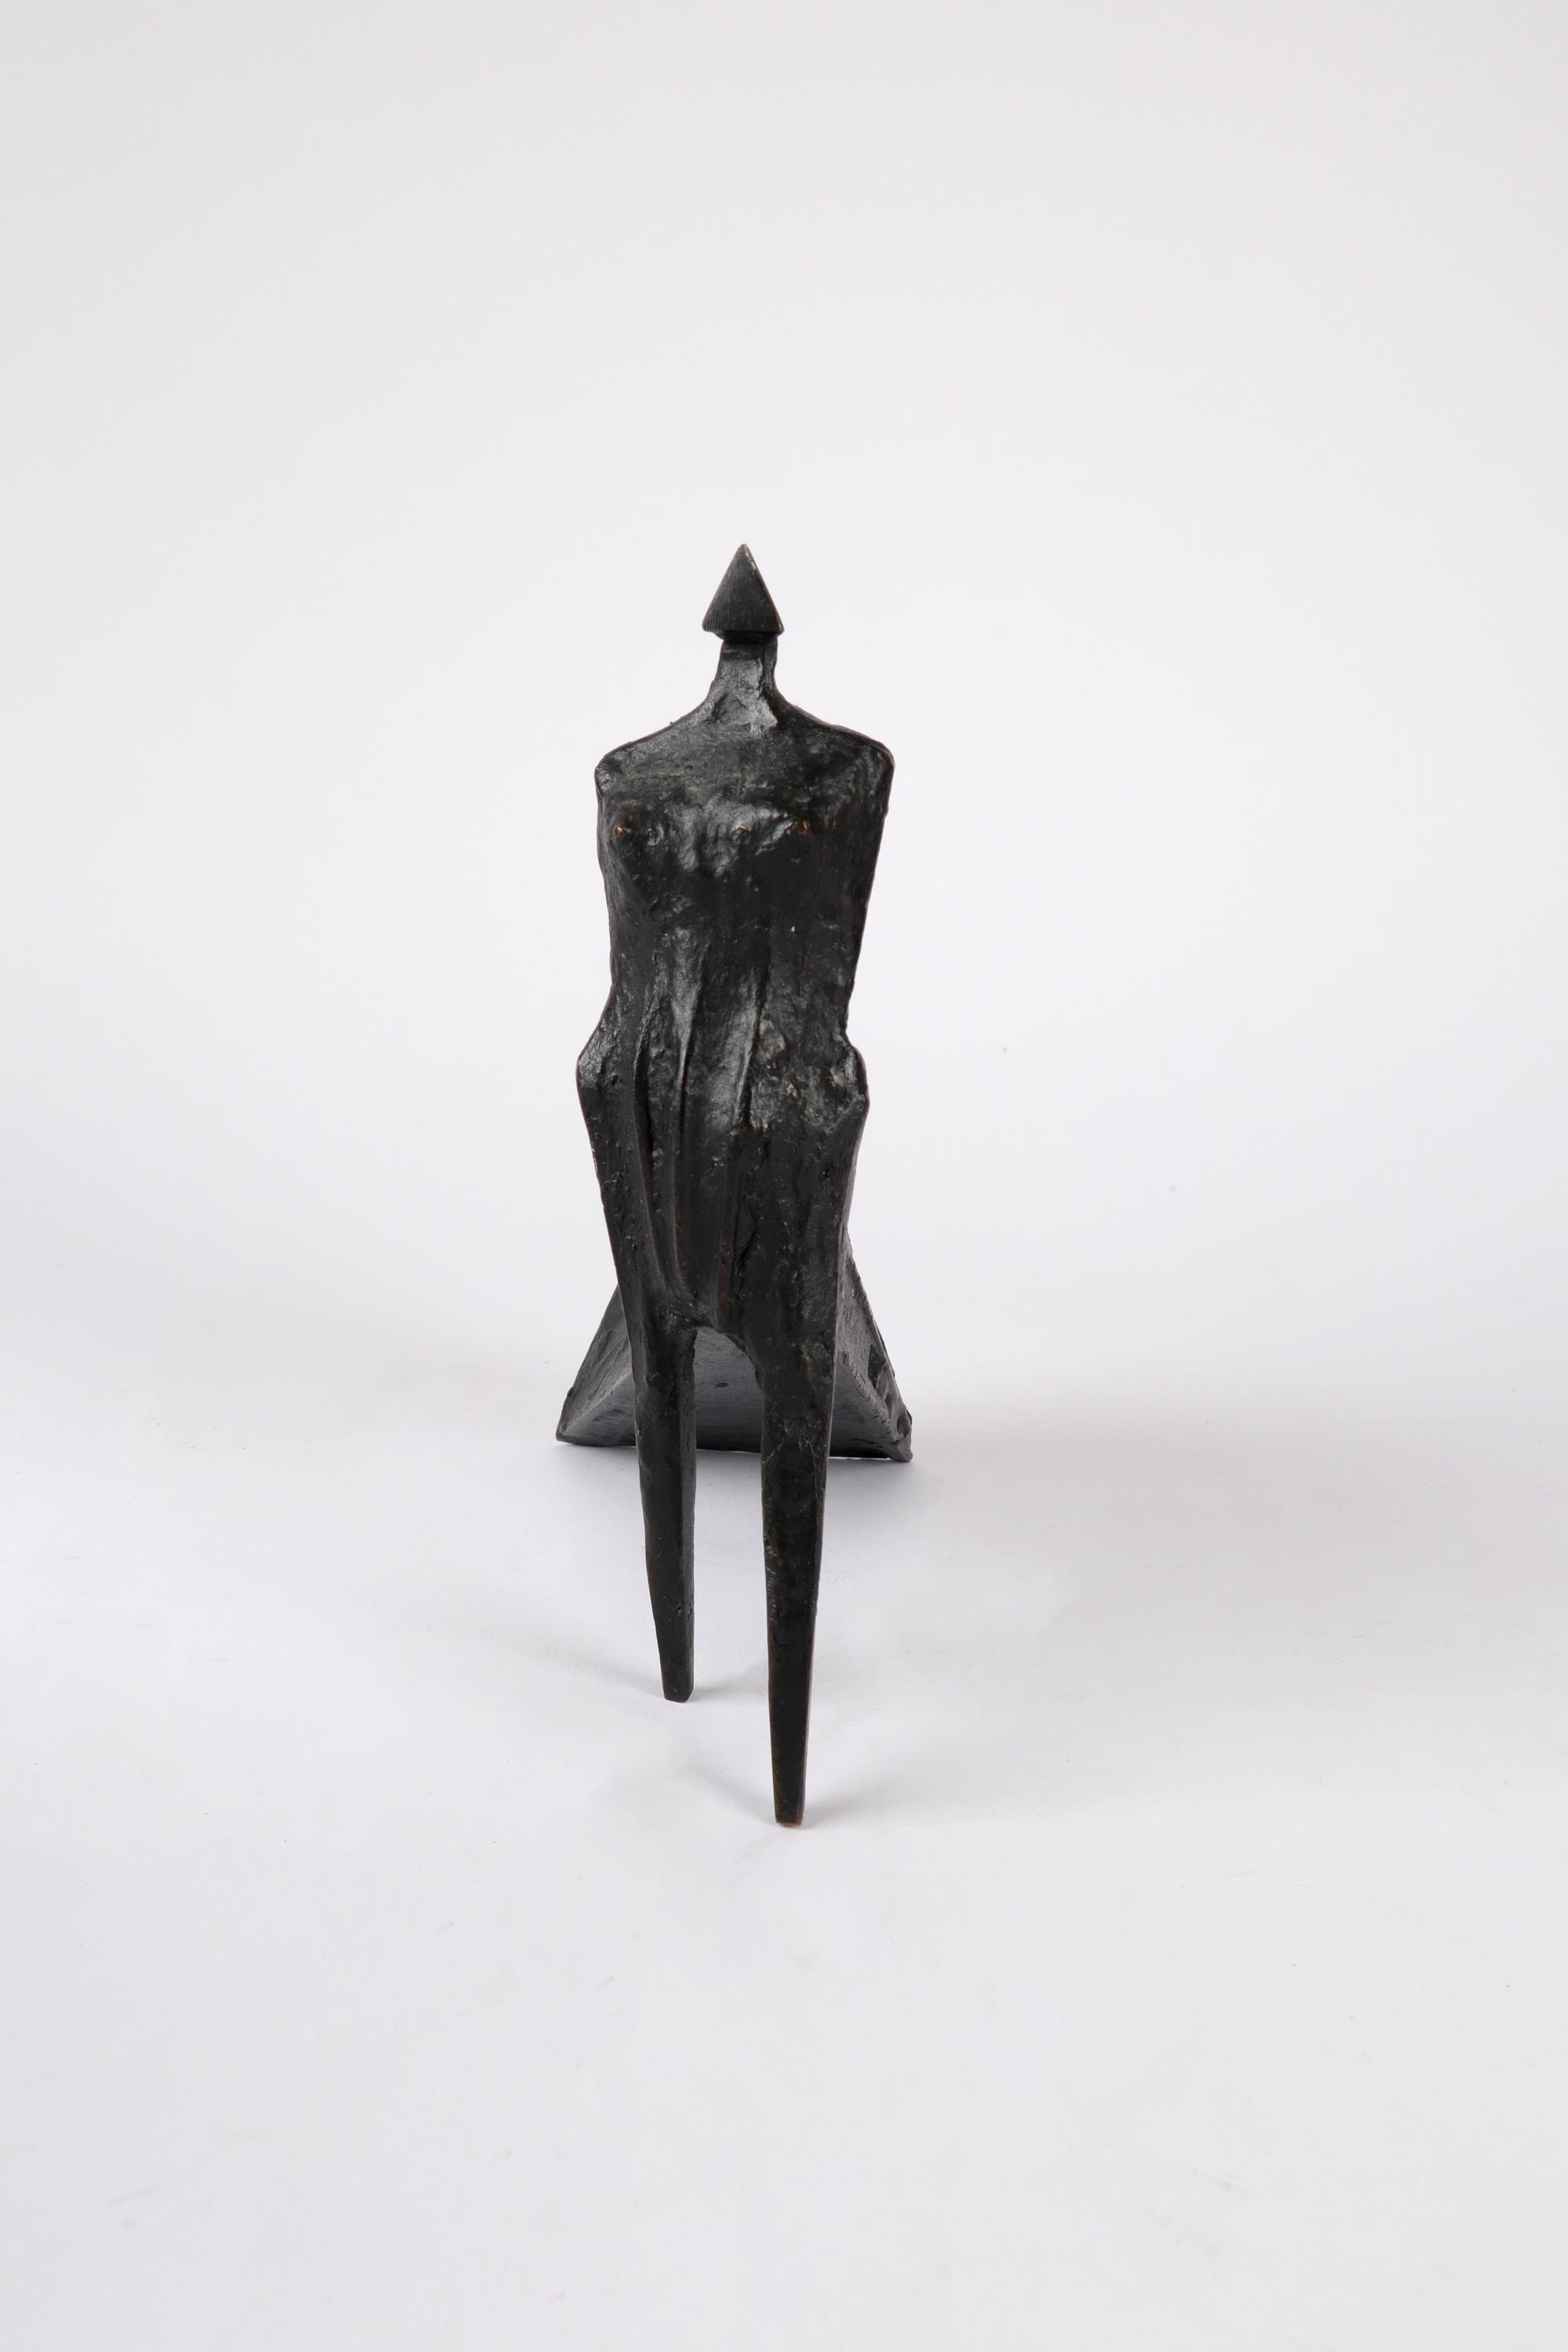 ‡Lynn Chadwick CBE, RA (1914-2003) Pair of Cloaked Figures III Each signed dated and numbered C/77/ - Image 3 of 22